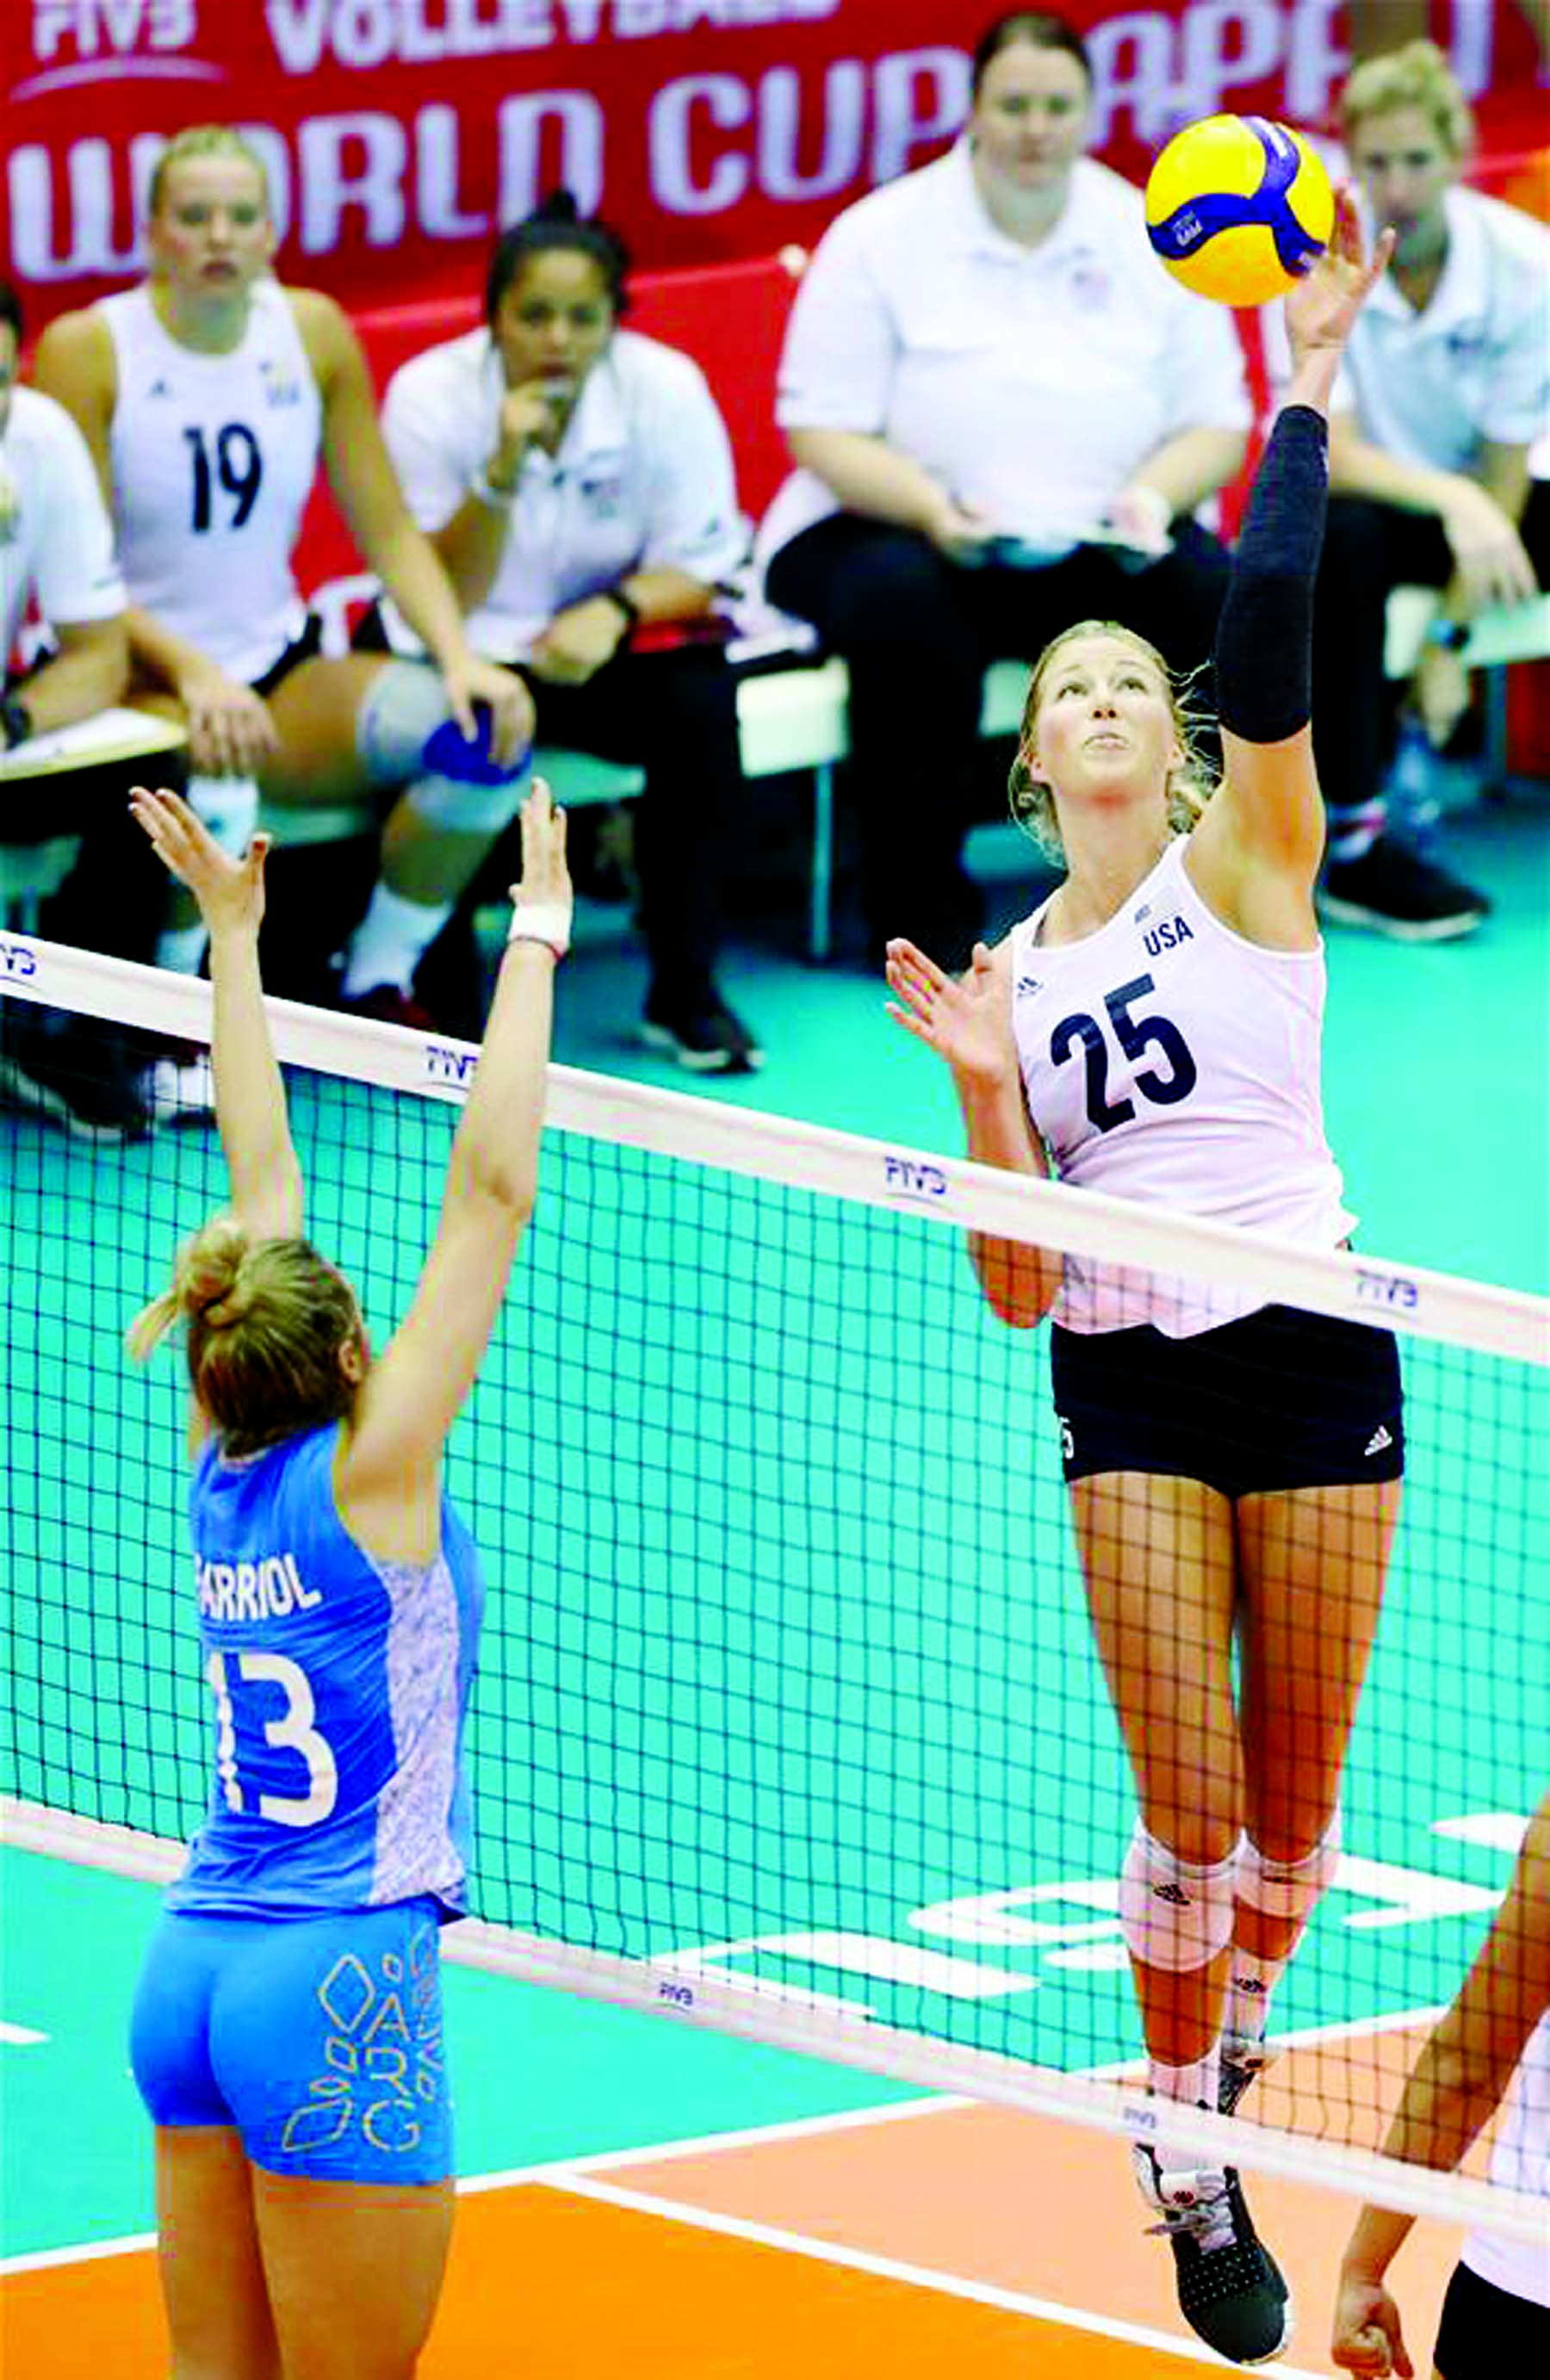 Karsta Lowe (right) of the United States spikes the ball during the Robin Round match between the United States and Argentina at 2019 Volleyball Women's World Cup in Hamamatsu, Japan  on Monday.